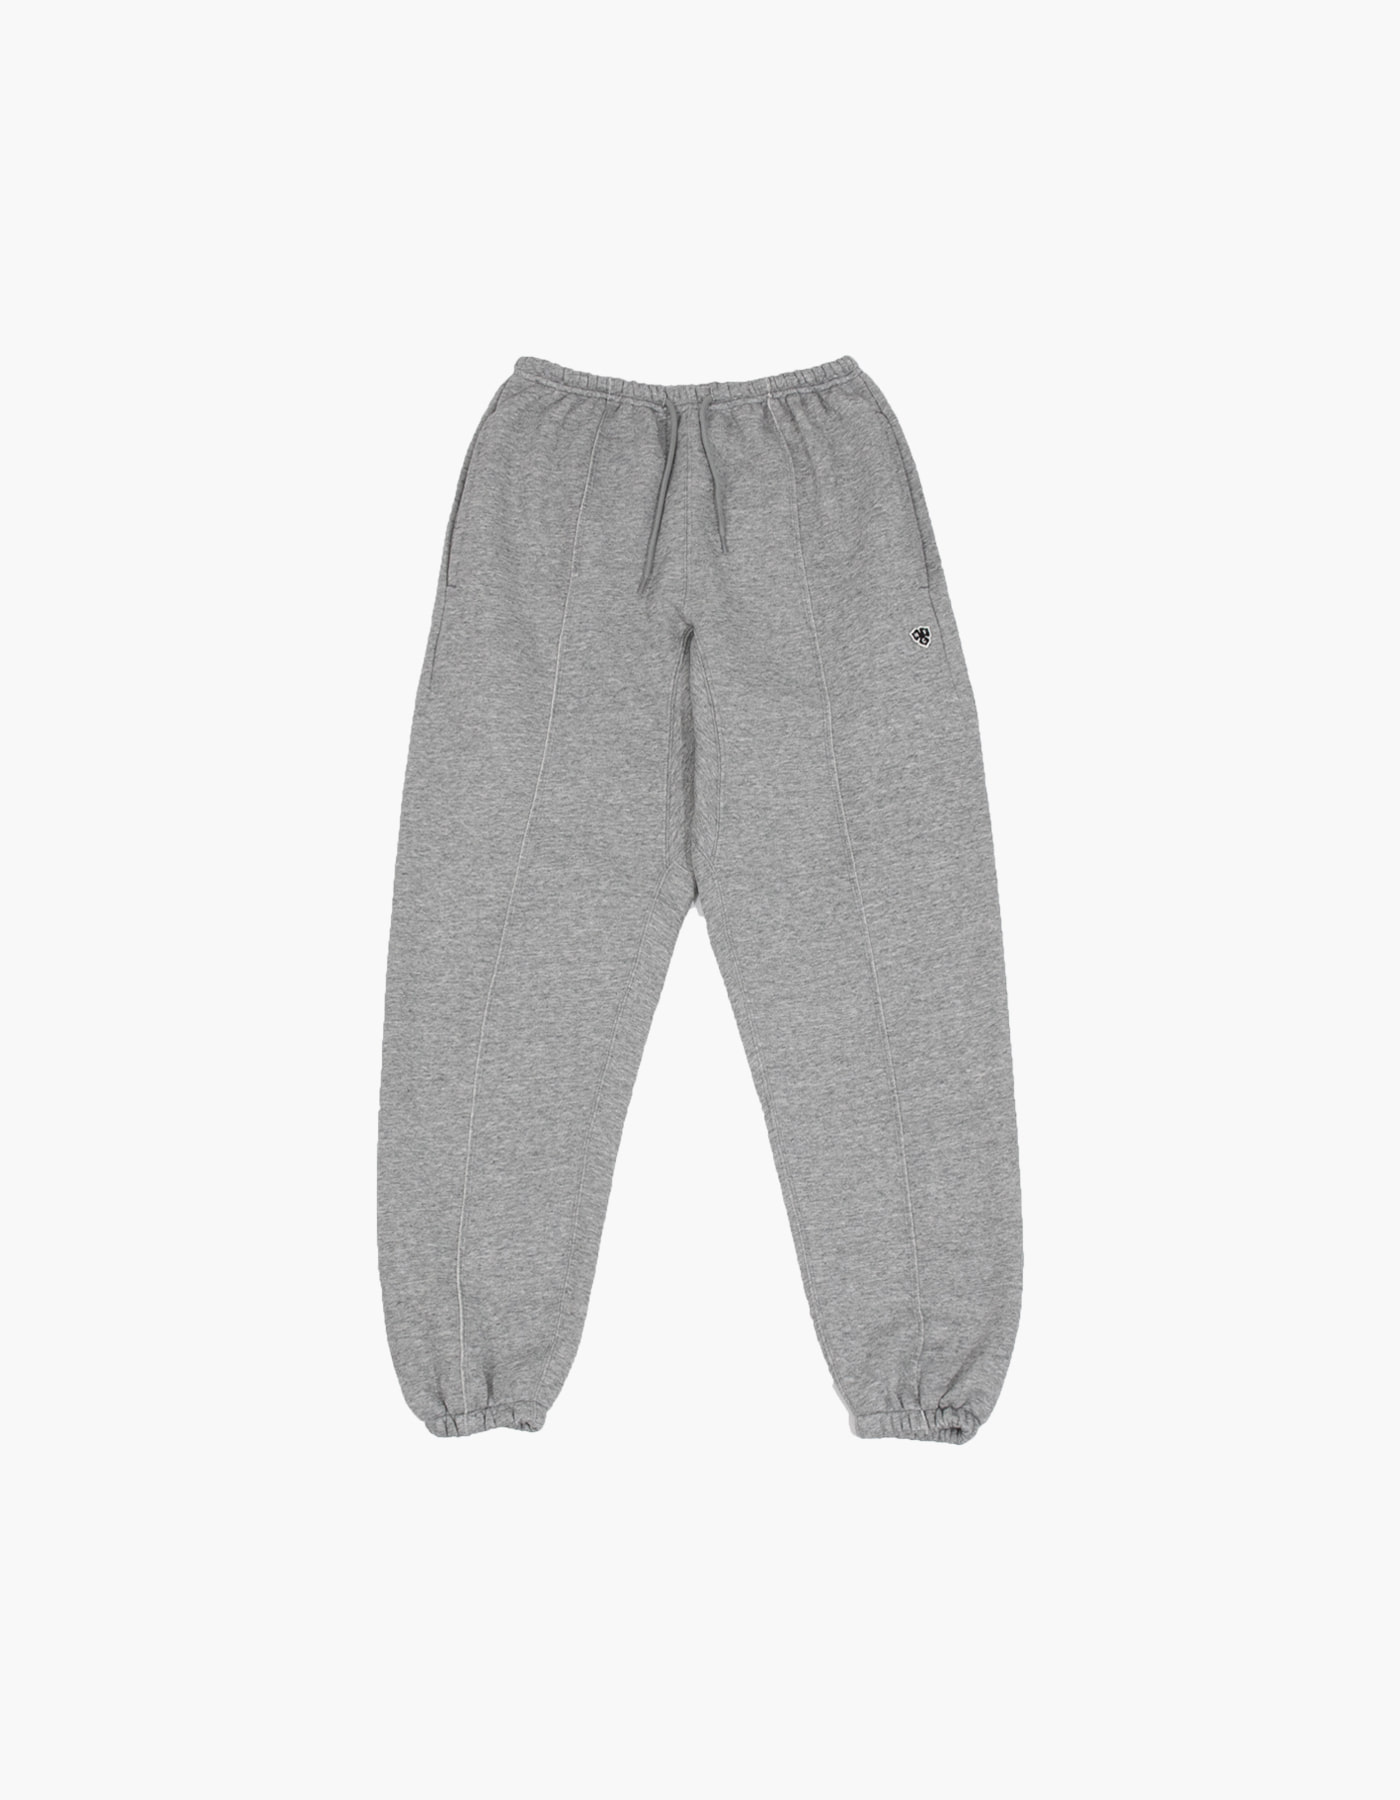 ACS SWEATPANTS / M.GREY